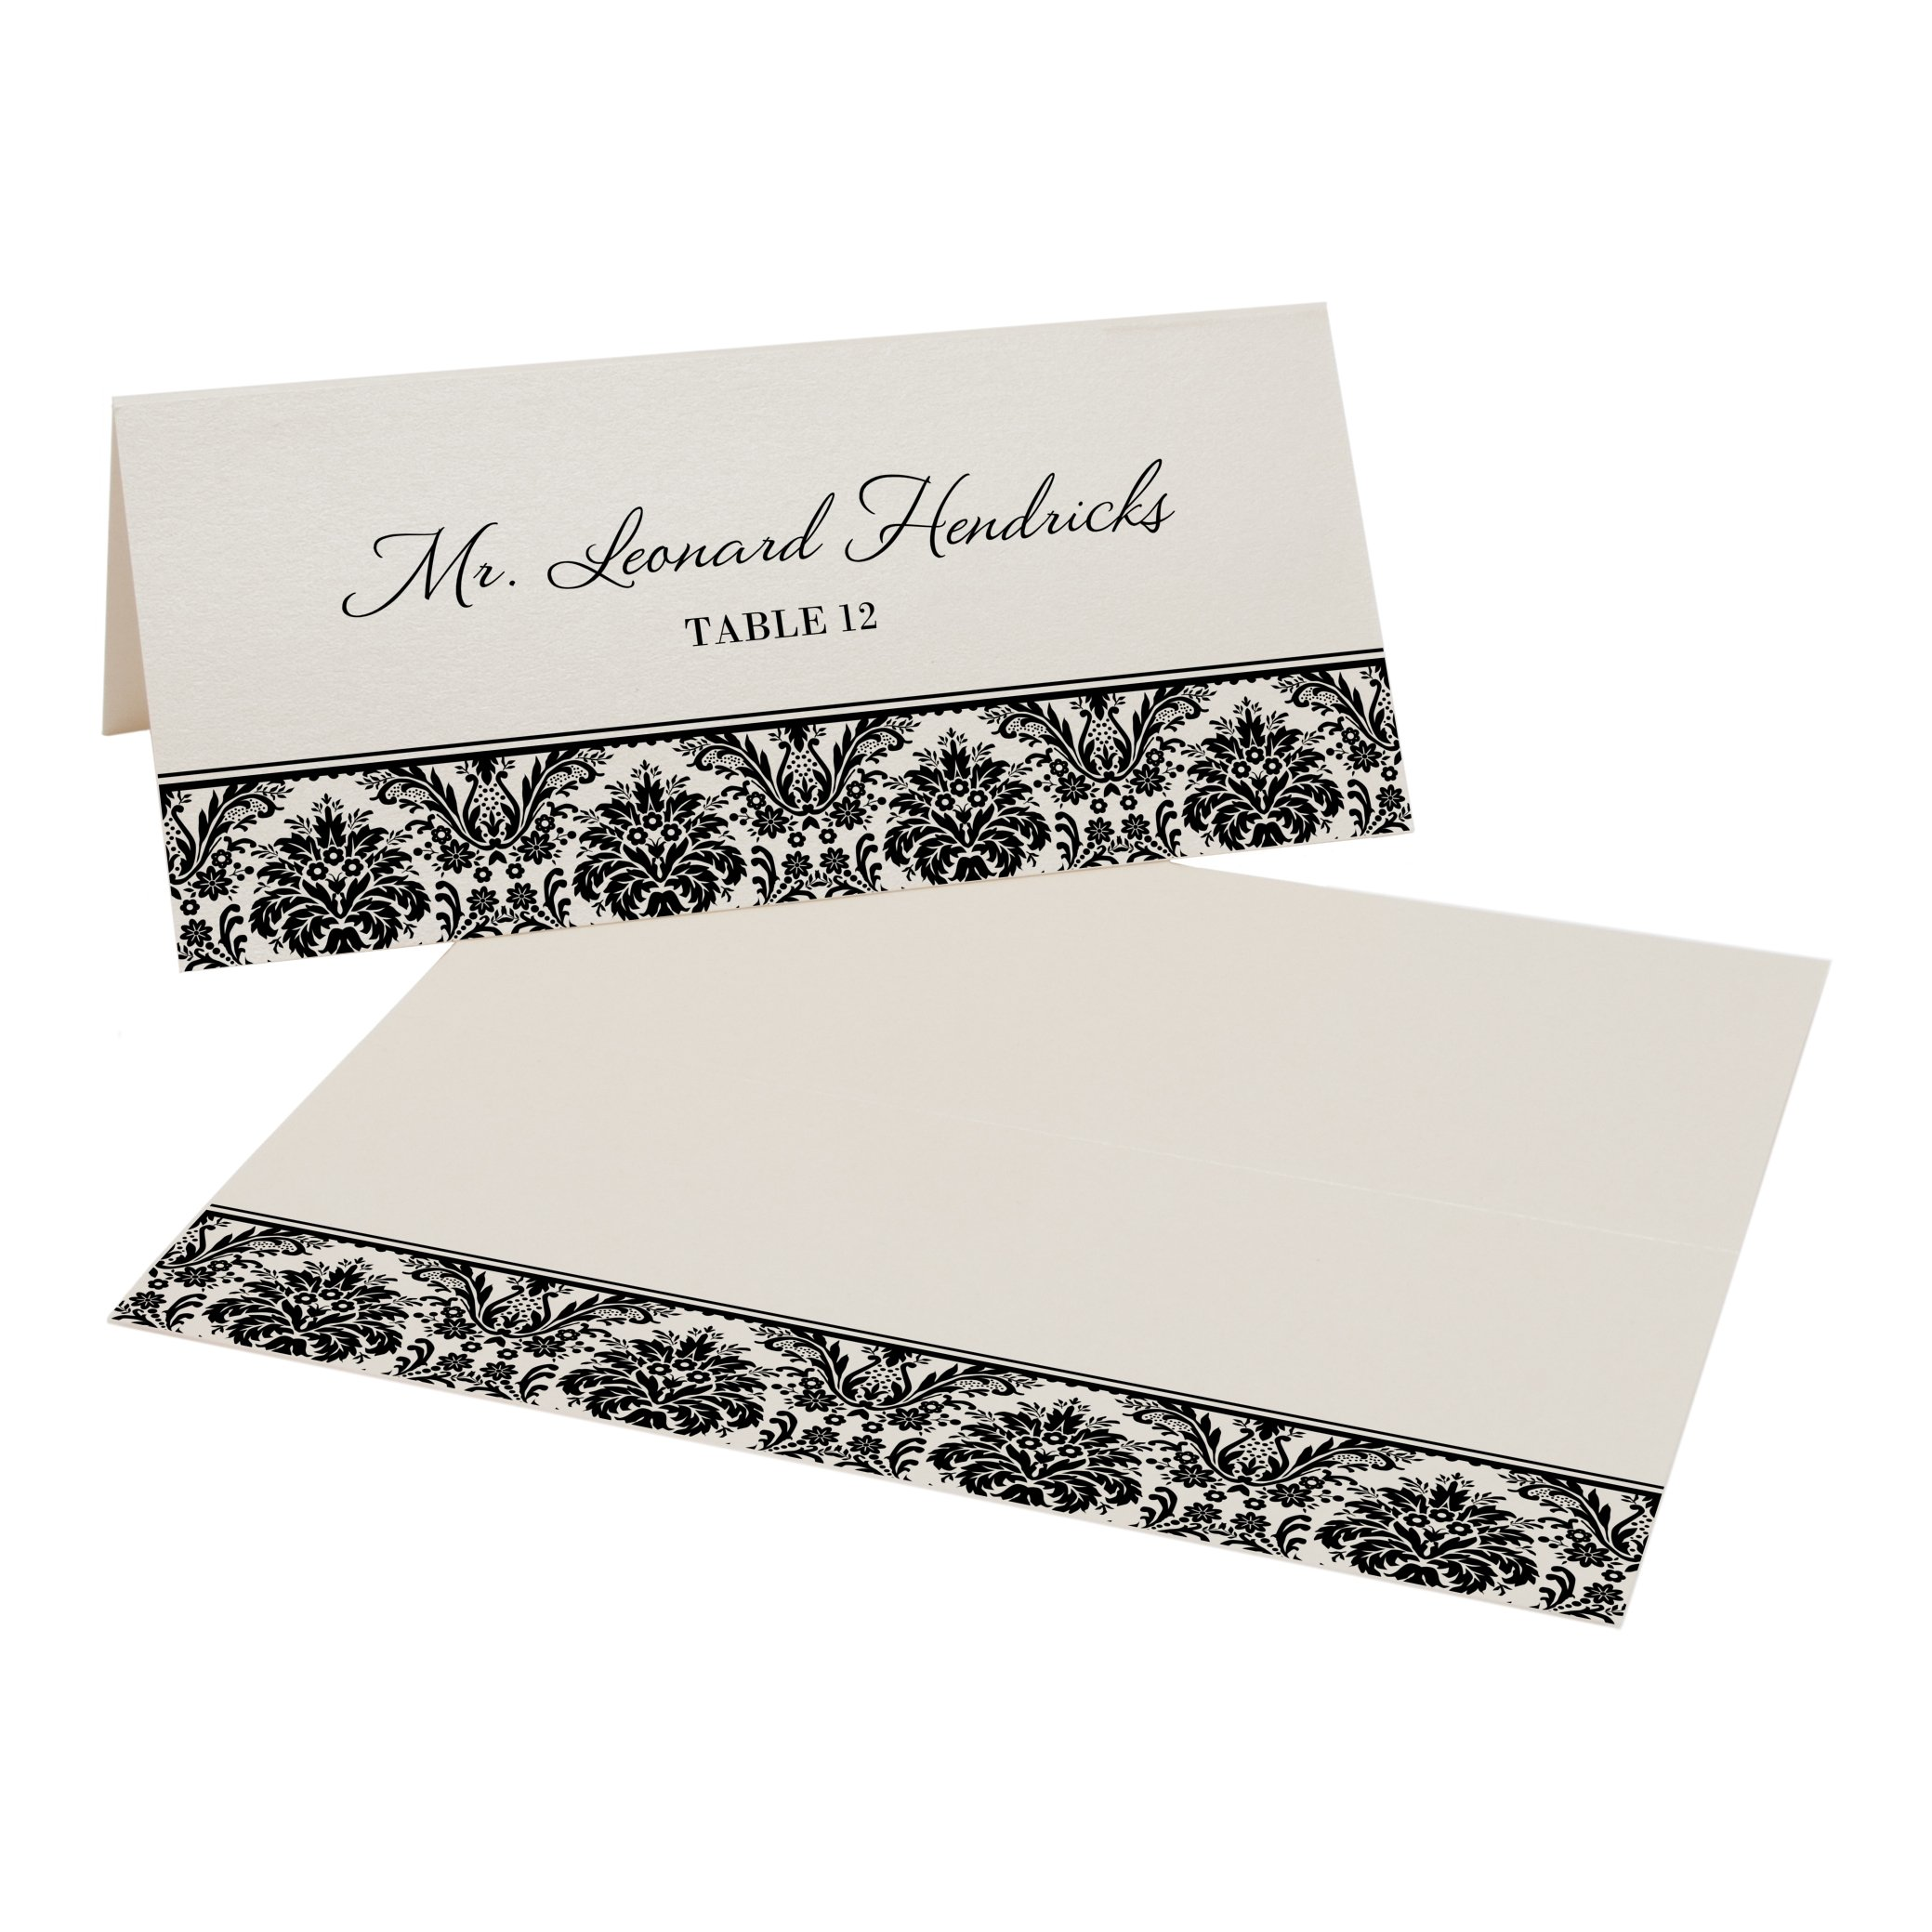 Damask Pattern Place Cards, Champagne, Black, Set of 375 by Documents and Designs